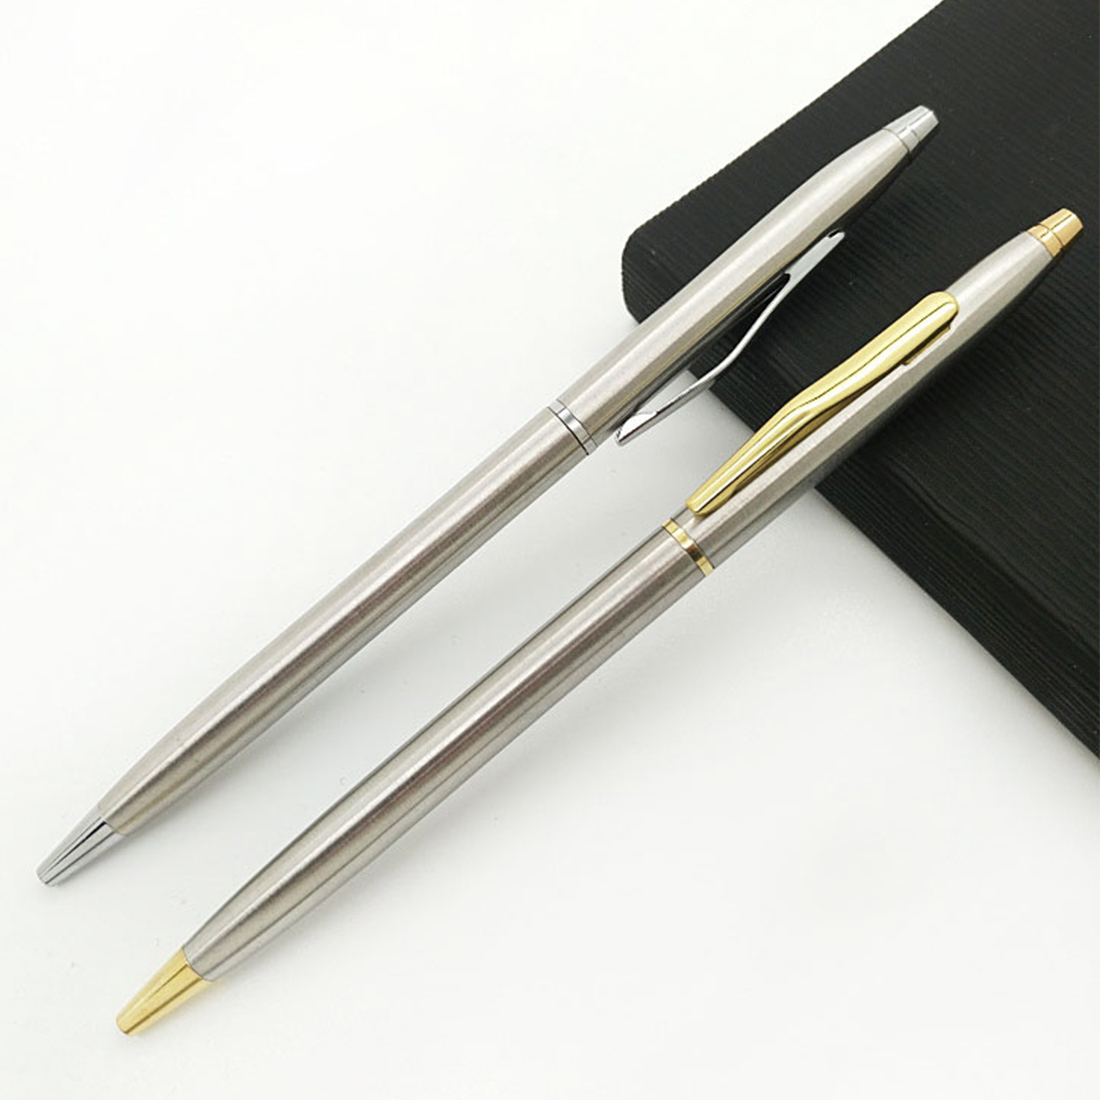 Pens, Pencils & Writing Supplies Ballpoint Pens Fangnymph Stainless Steel Rotating Metal Ballpoint Pen Stationery Ballpen 0.7mm Black Pen Office & School Supplies Making Things Convenient For The People